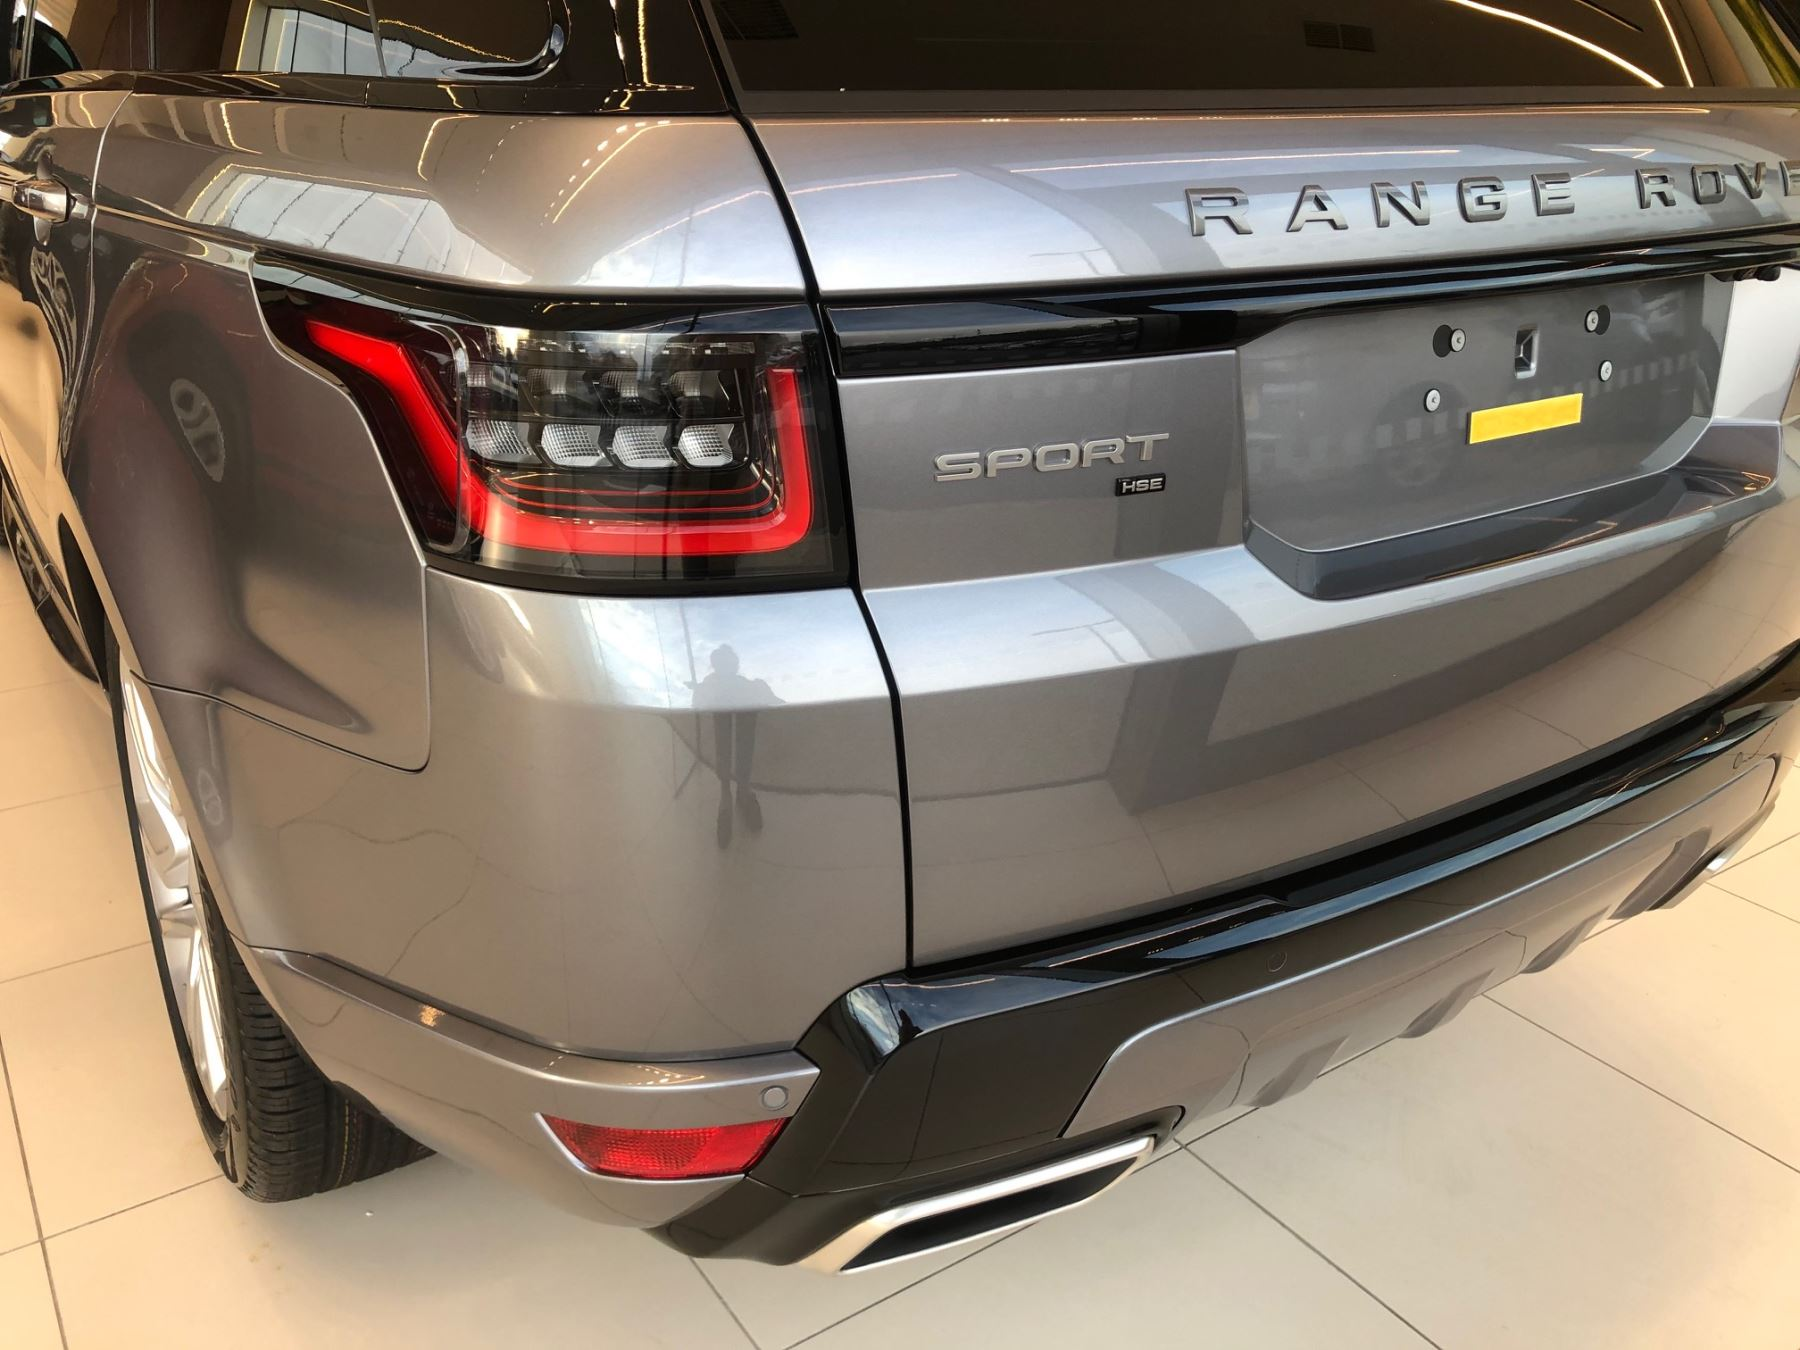 Land Rover Range Rover Sport 3.0 SDV6 HSE Dynamic (7 seat) image 9